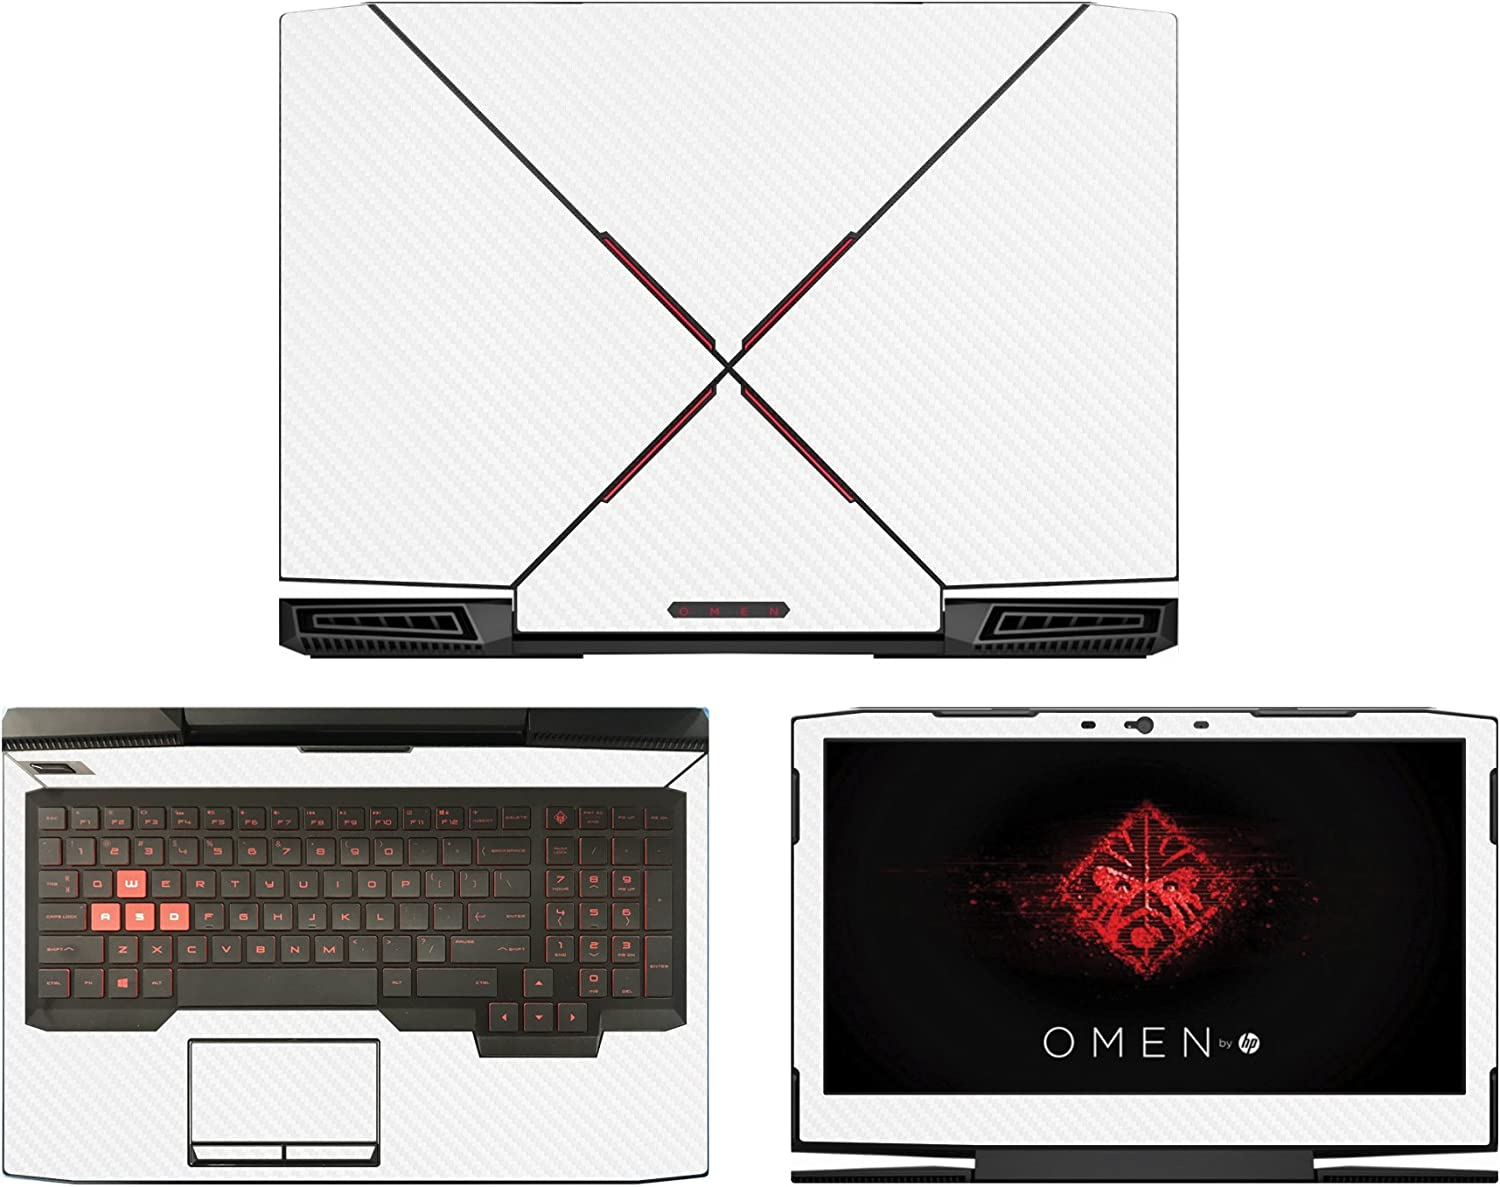 Decalrus - Protective Decal for Daily bargain sale 15-CE011DX HP Store Screen Omen 15.6